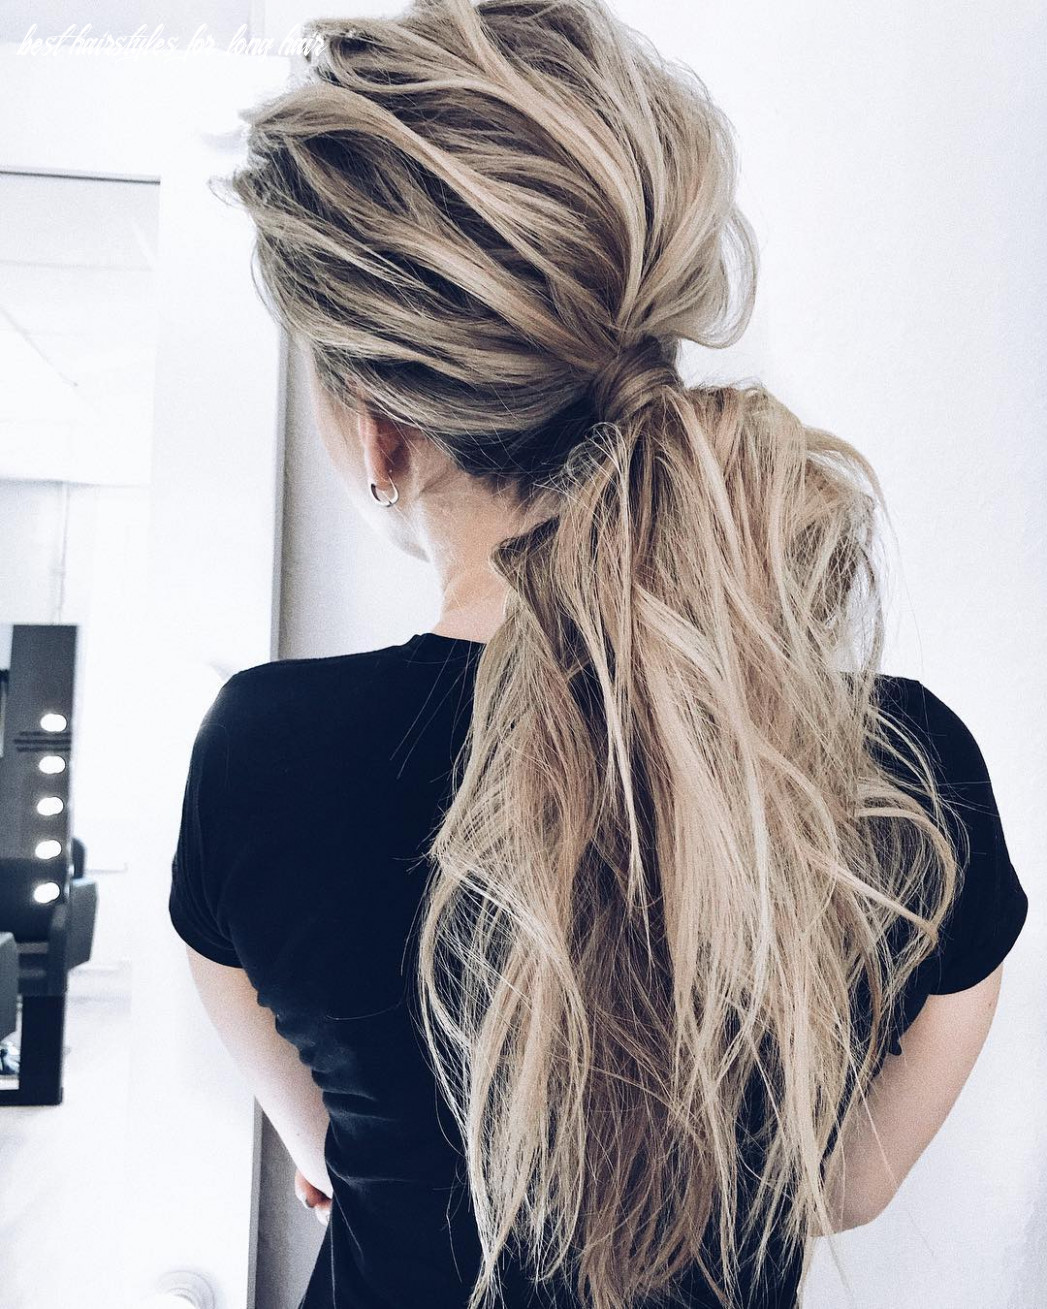 9 creative ponytail hairstyles for long hair, summer hairstyle